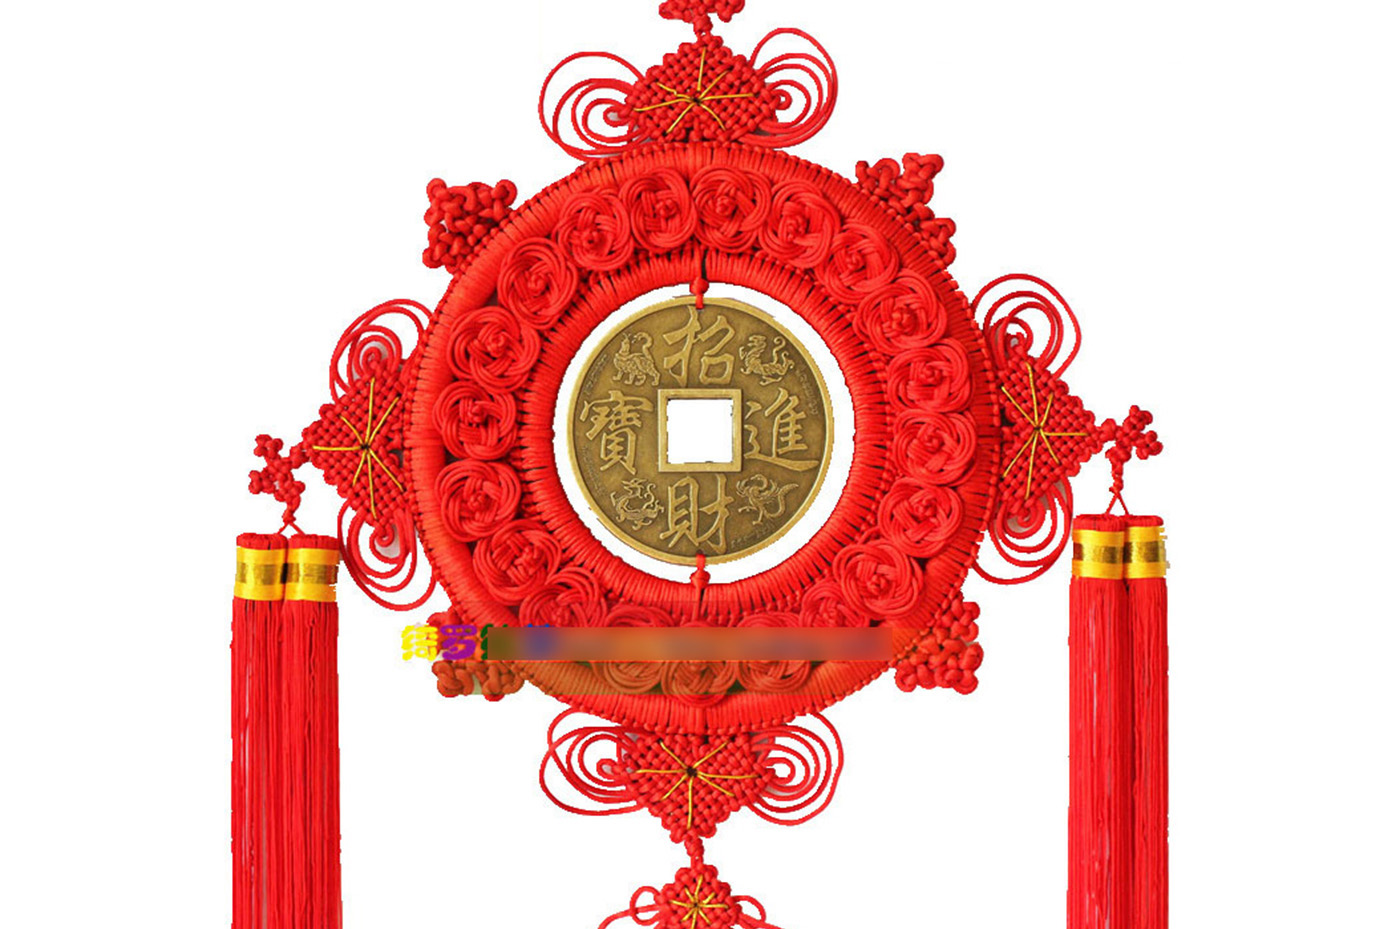 Décoration traditionelle Zhong Guo Jie 2